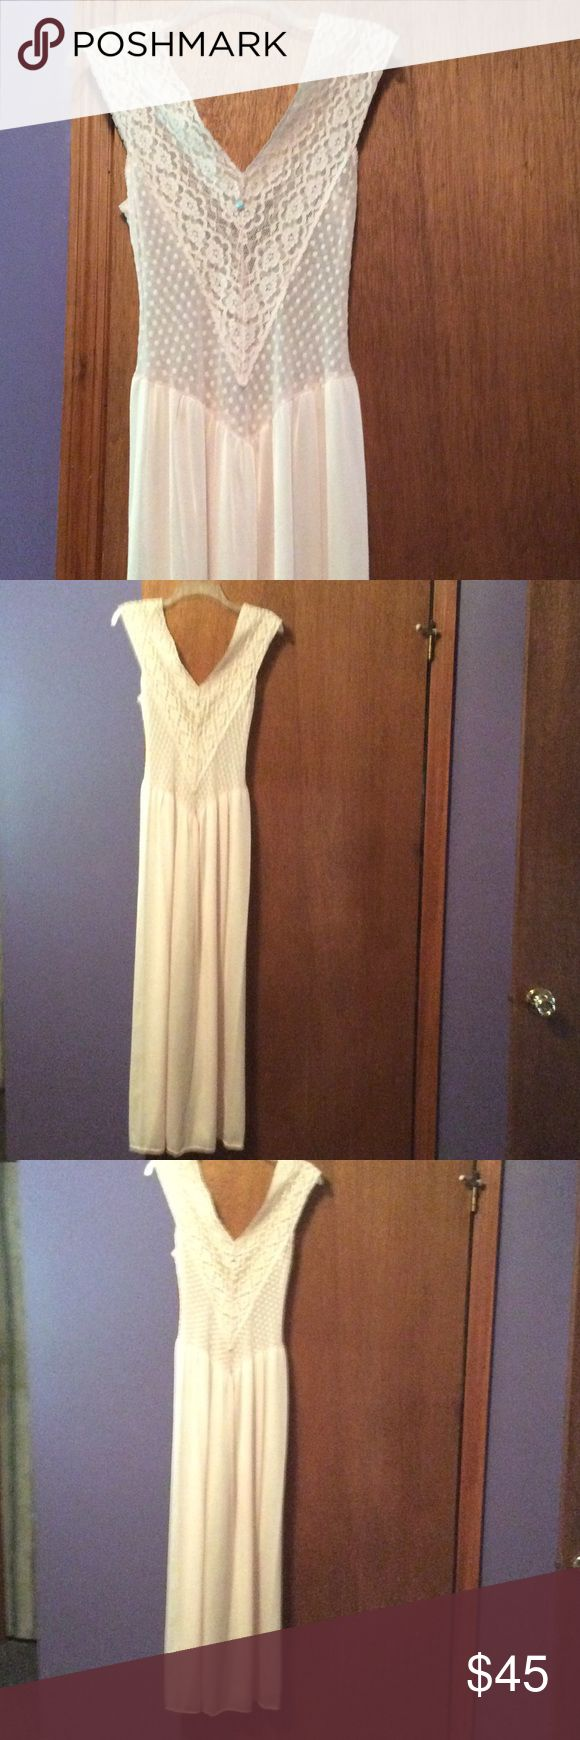 Vintage full length gown. VIntage full length gown by Ashley Taylor...upper part of gown is see thru lace.....pretty pink...excellent condition!!  🍷🍷🍷 Ashley Taylor Intimates & Sleepwear Pajamas